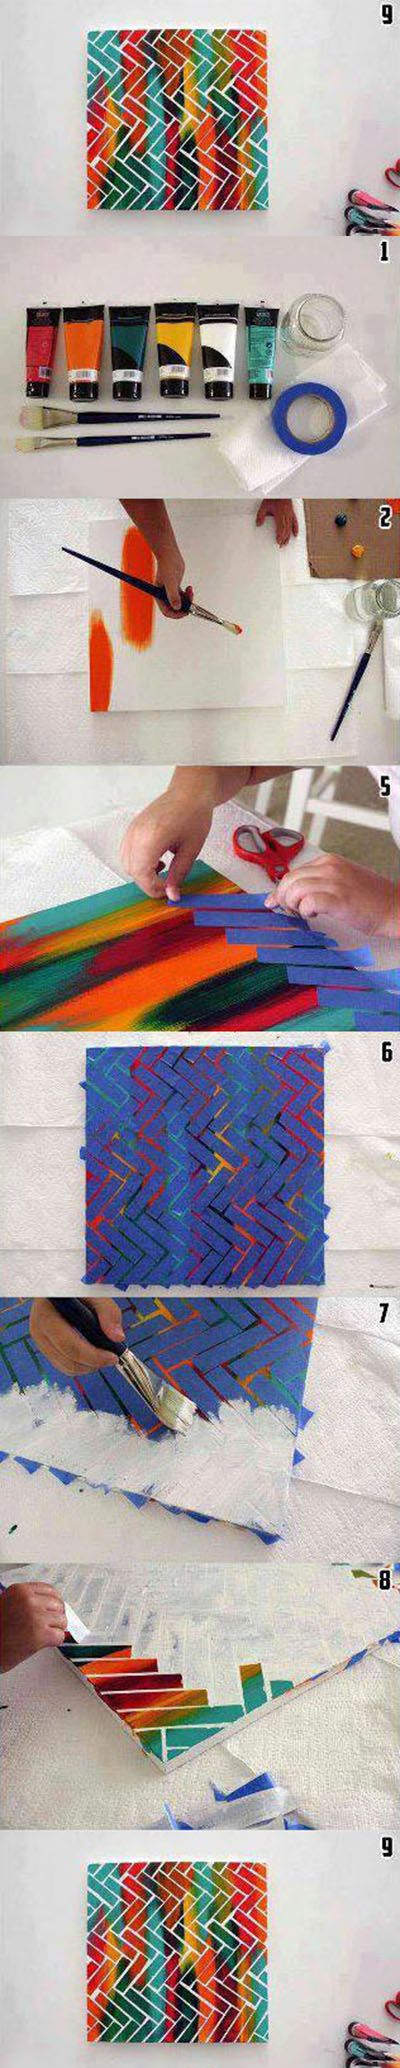 Diy Beautiful Tablemat | Best DIY Ideas this would be amazing done over a pair of white shoes :)